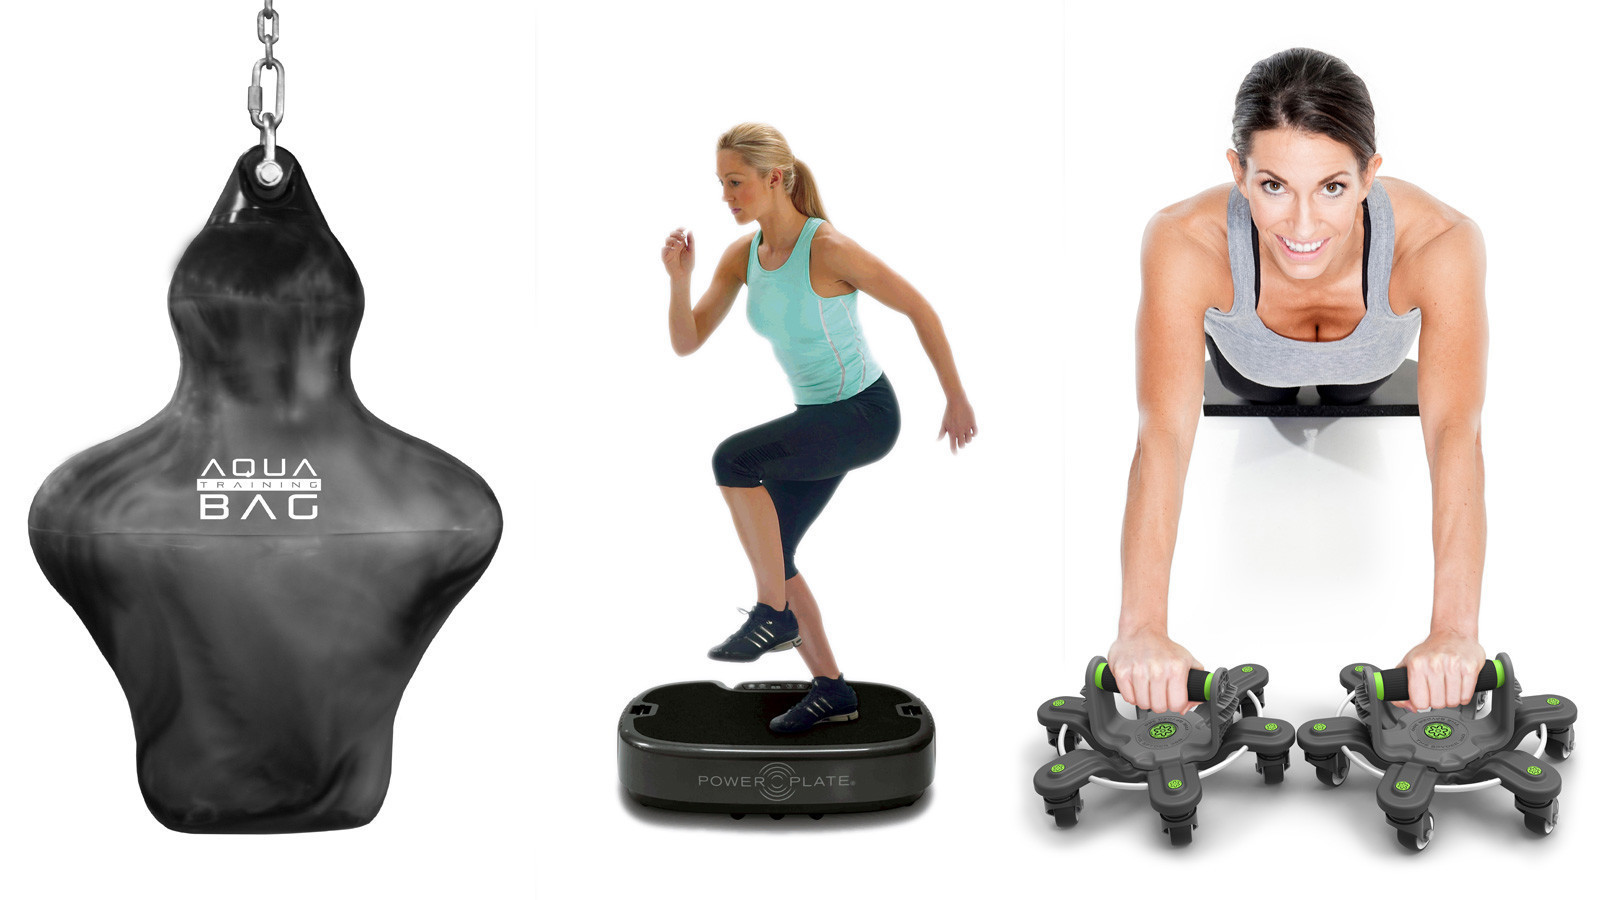 Image result for Pimp out your home gym: 11 gadgets we'd love to own right now